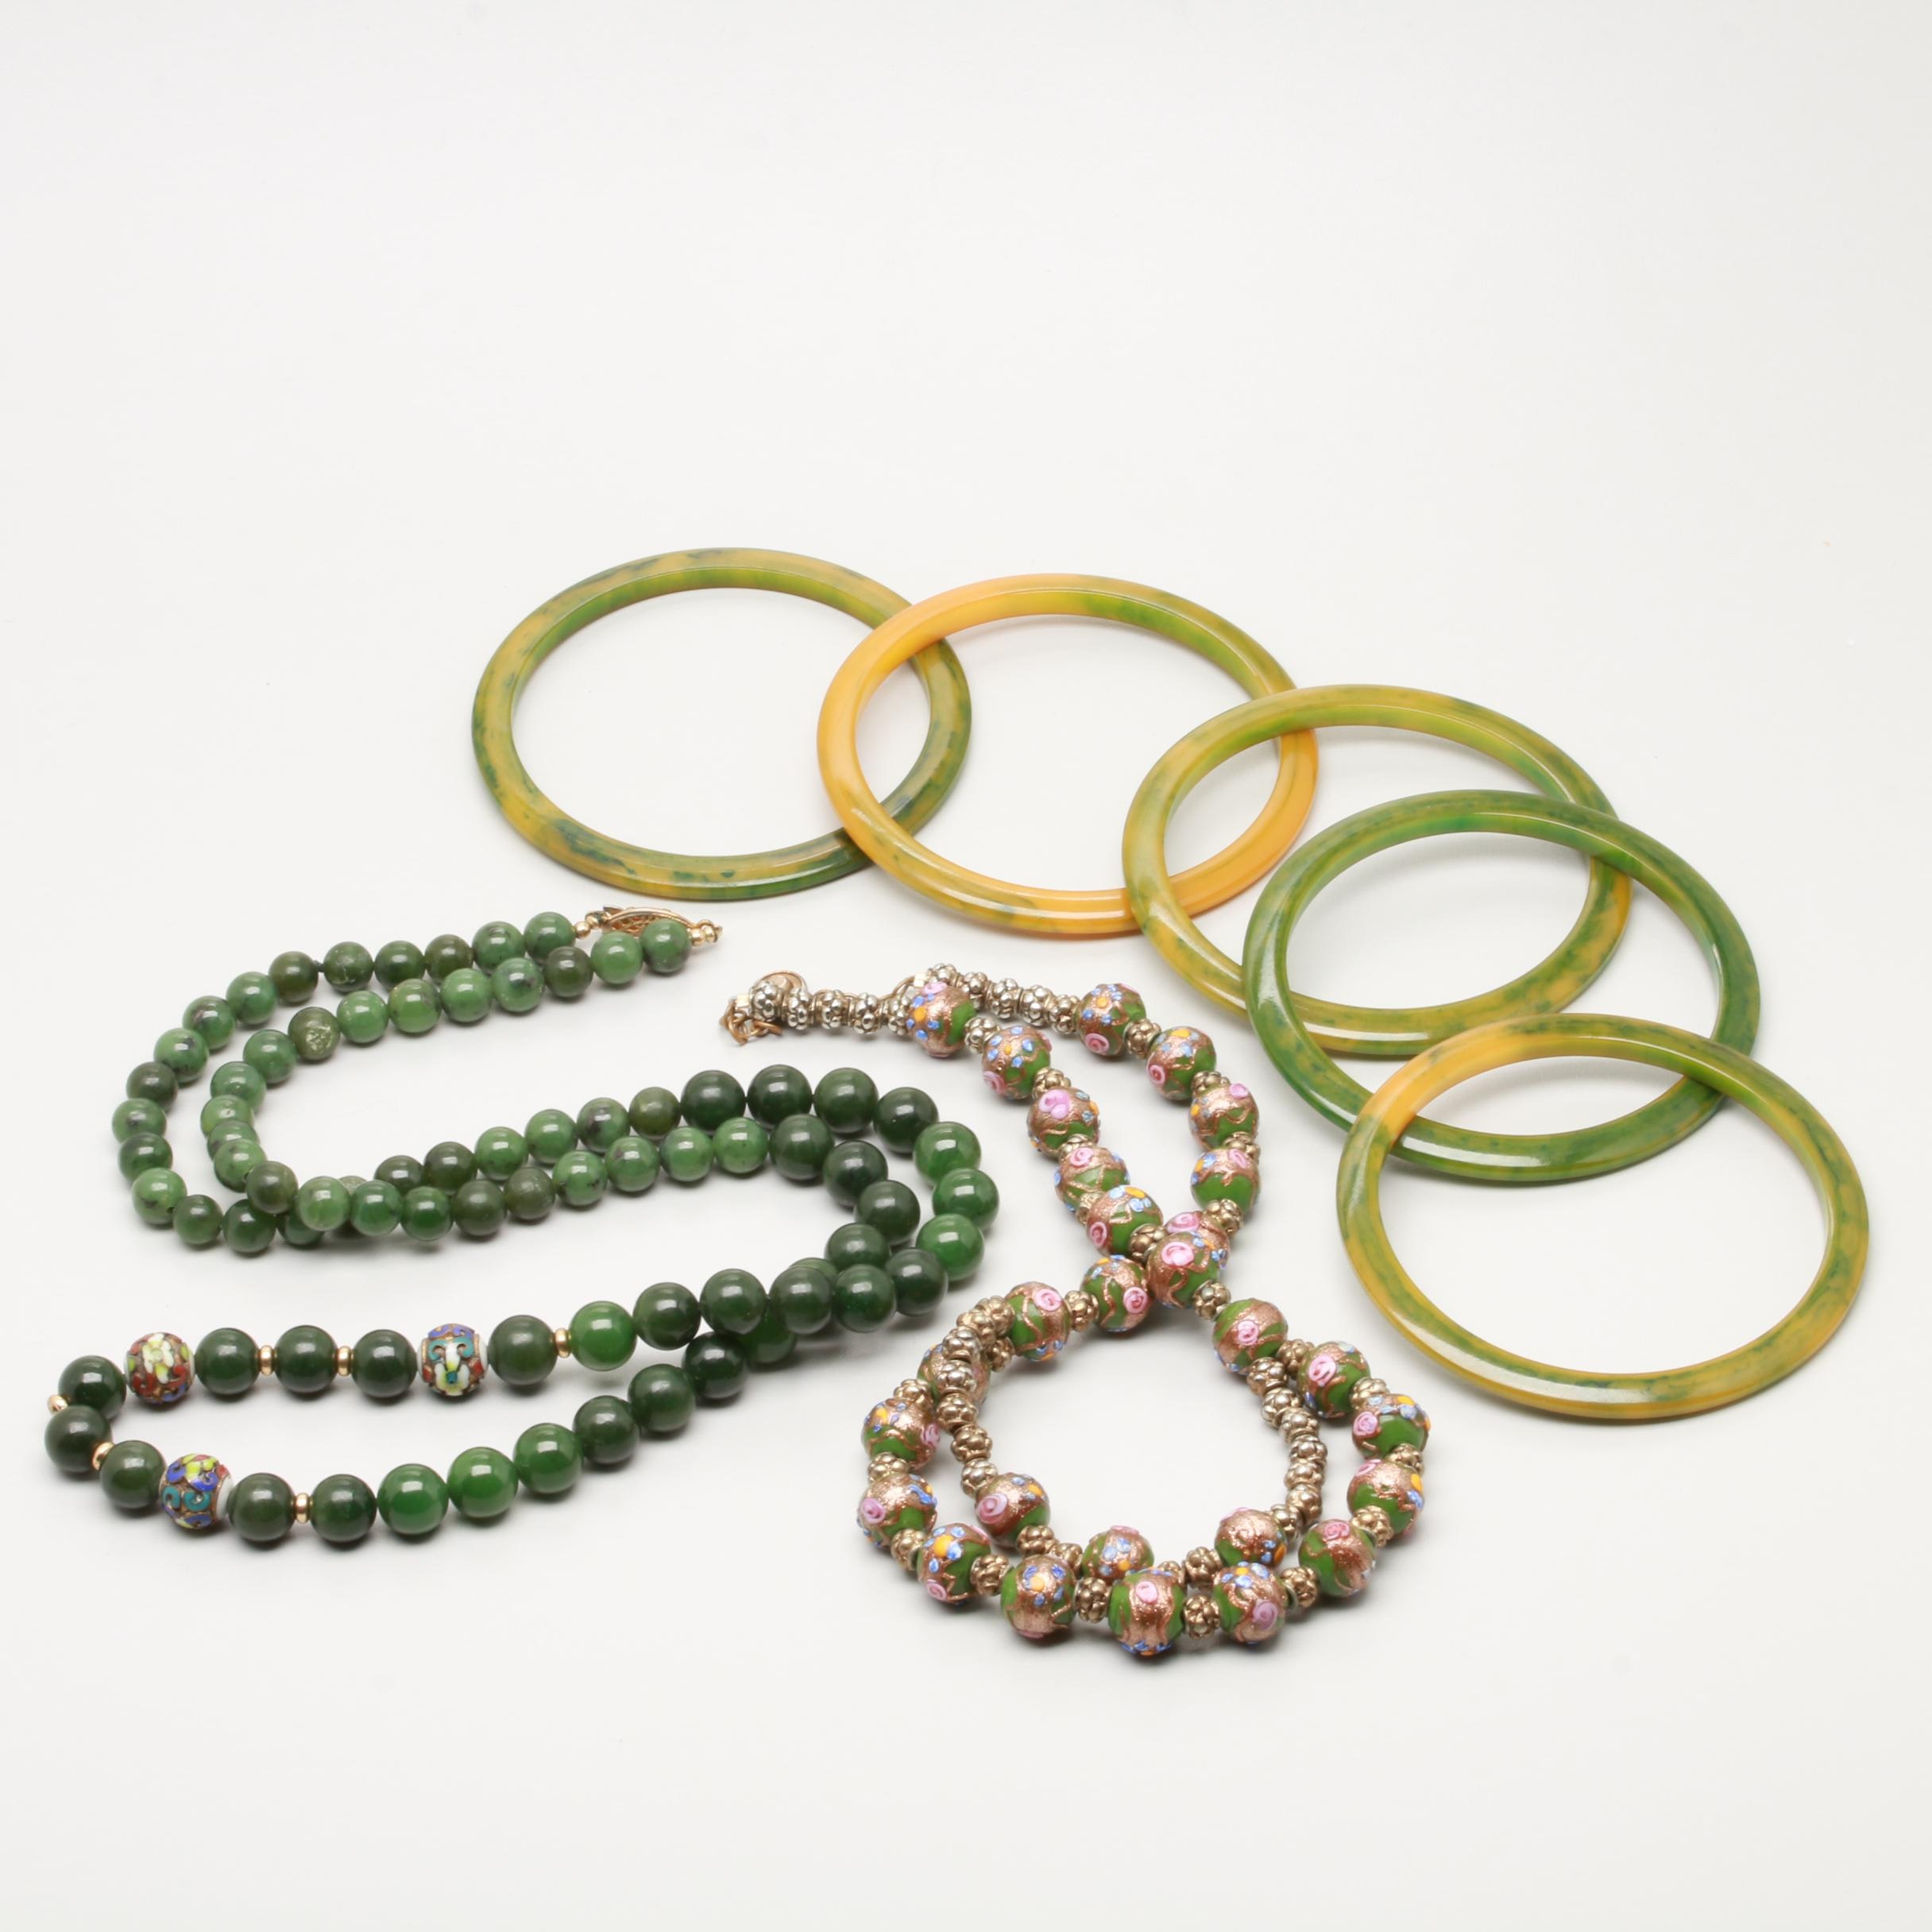 Assortment of Costume Jewelry Including Bakelite, Nephrite, and Glass